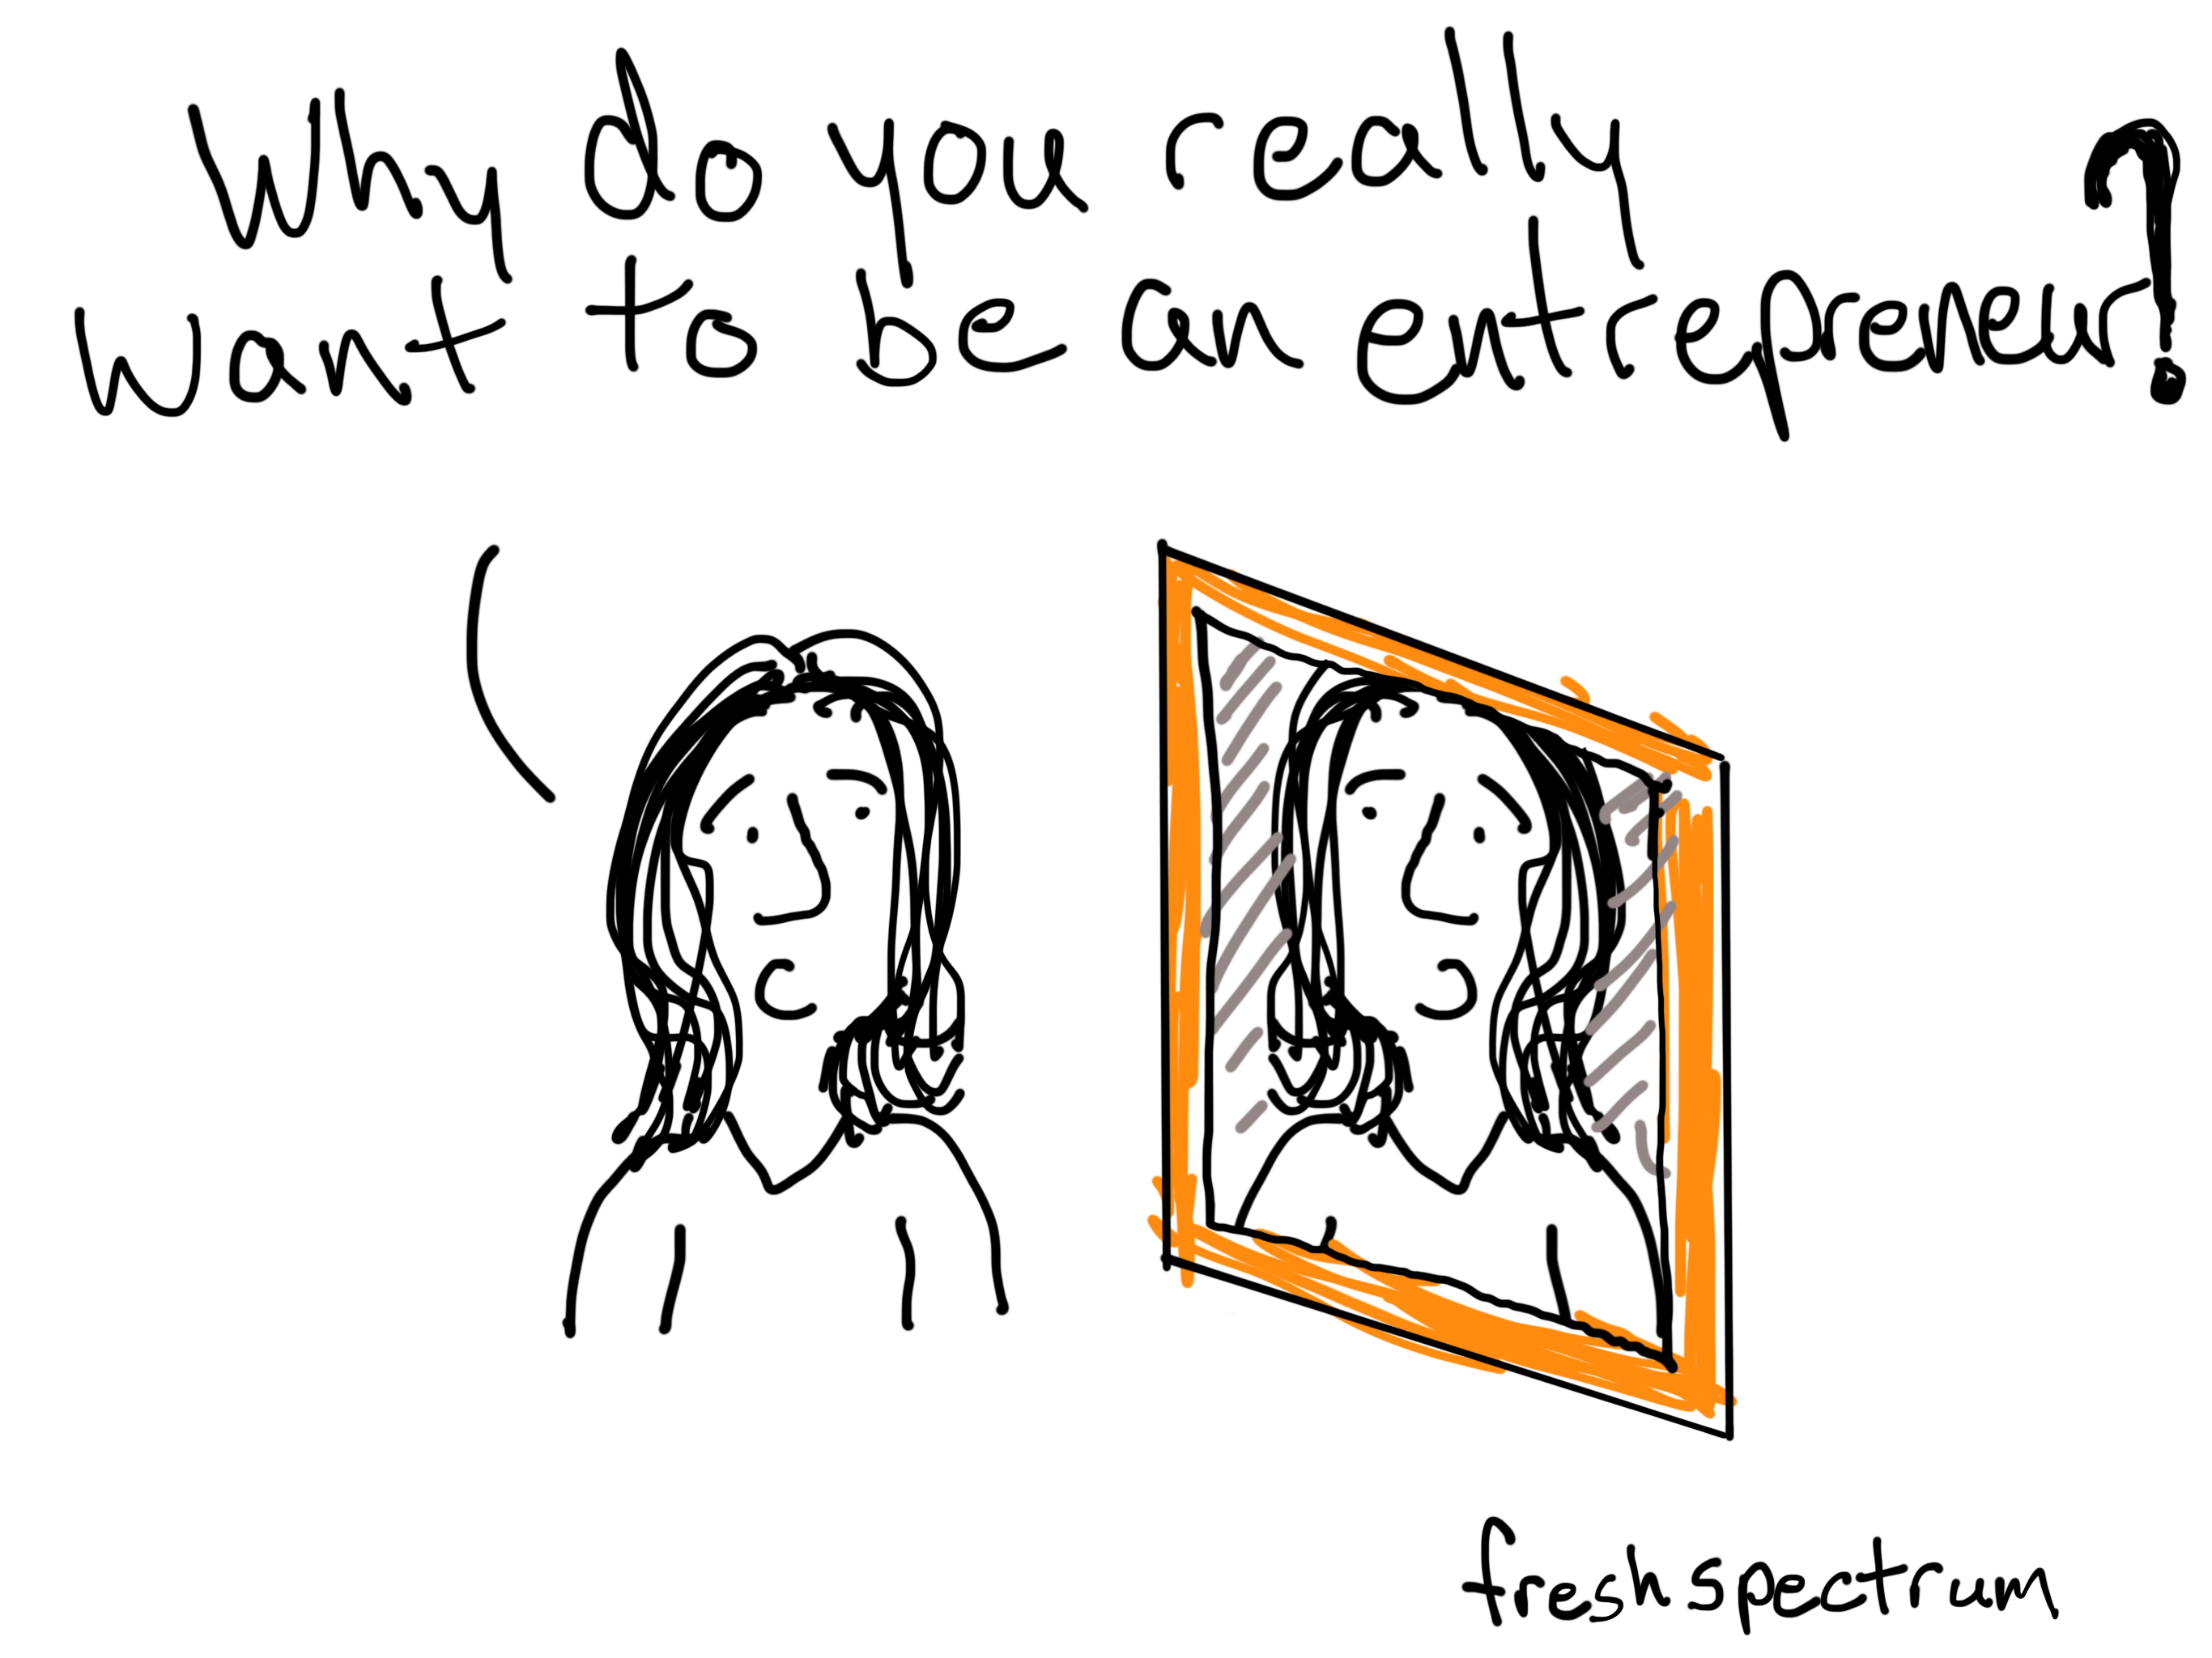 Why be an entrepreneur, inspired by Terry Conlon